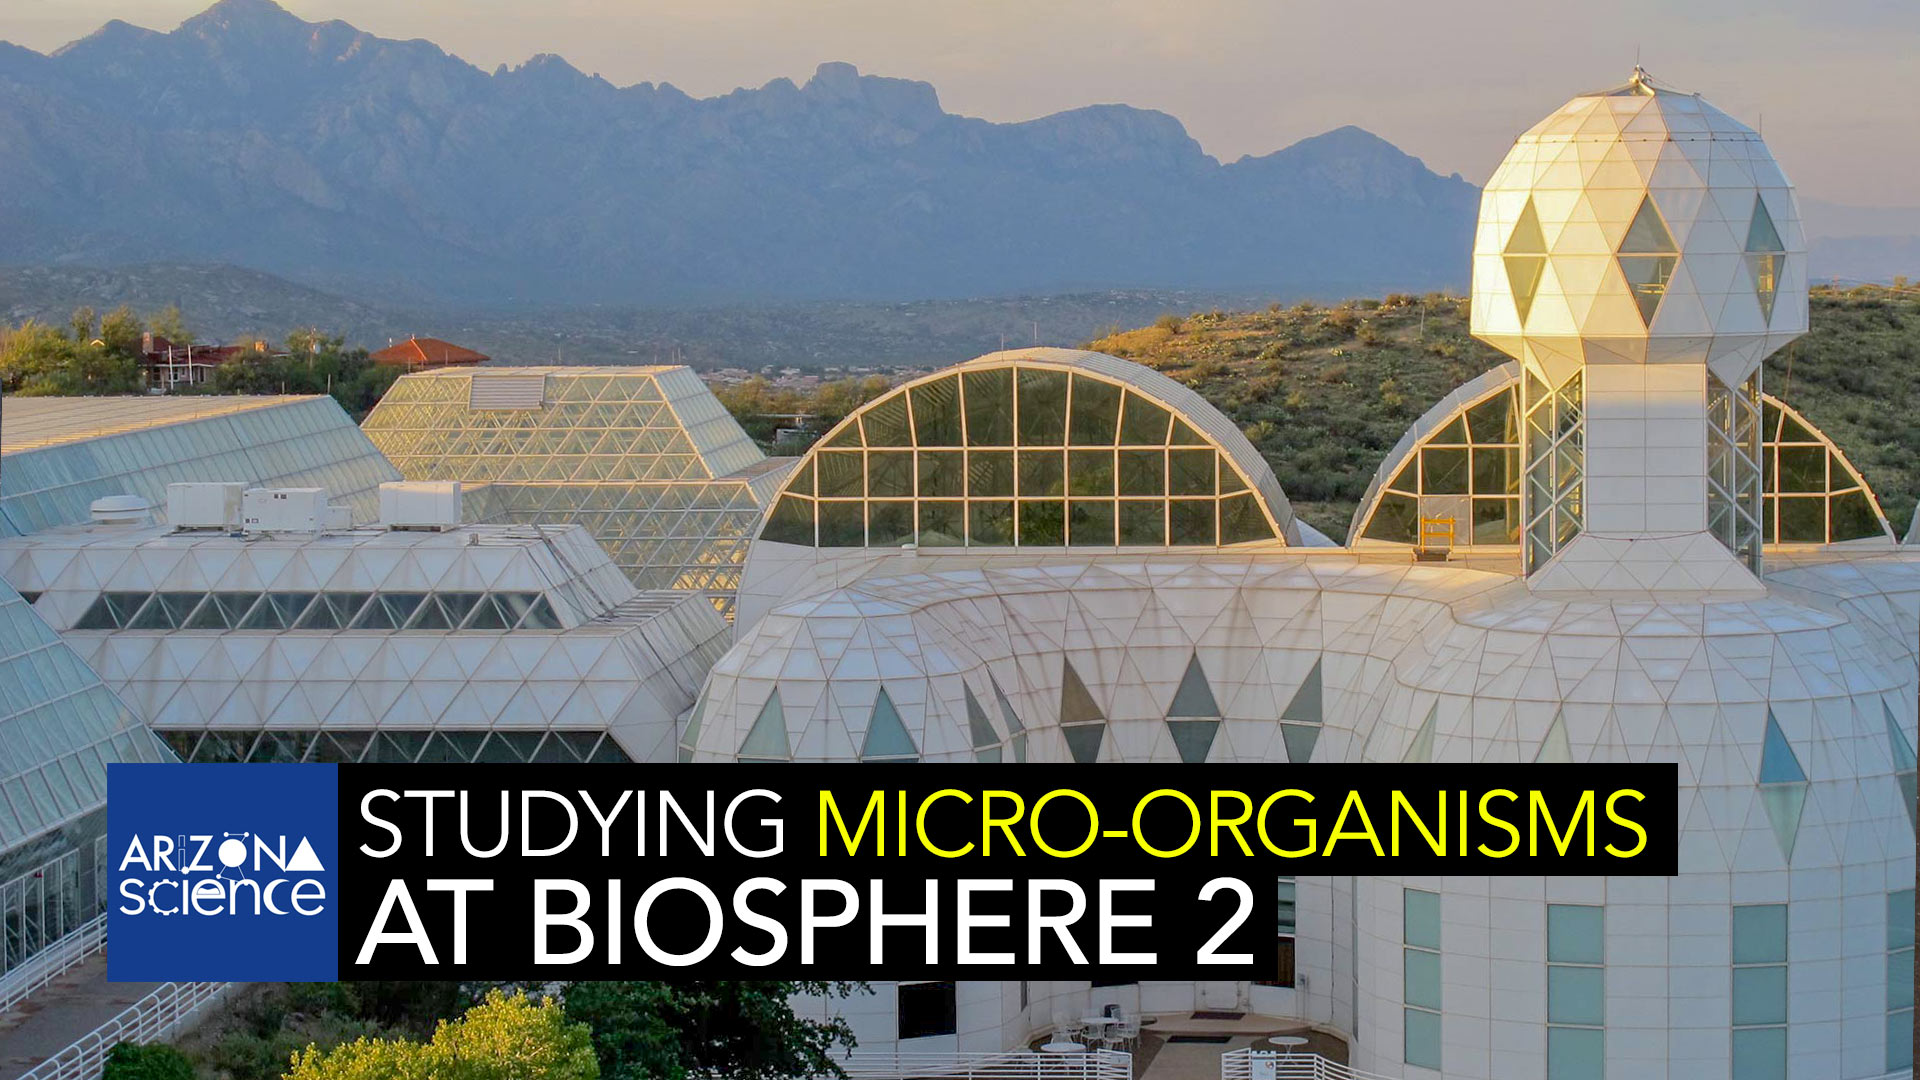 UA ecosystem professor Laura Meredith discusses her research at Biosphere 2.